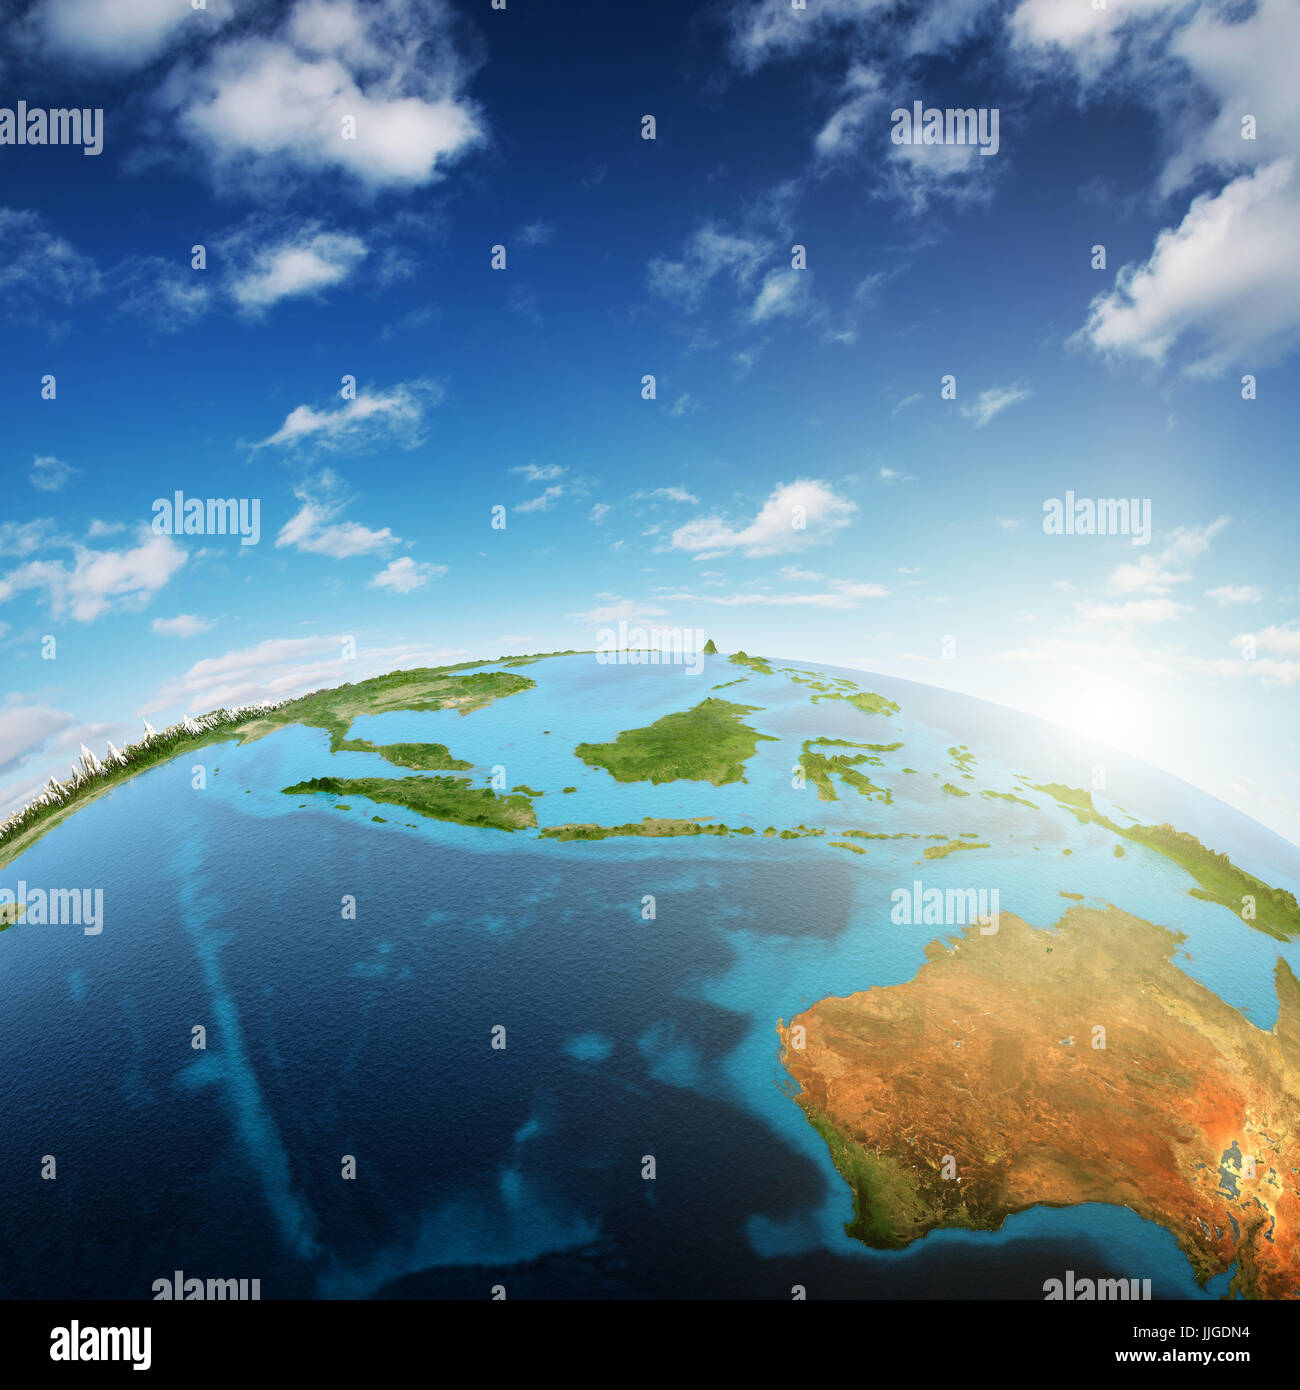 Australia and South-East Asia - Stock Image